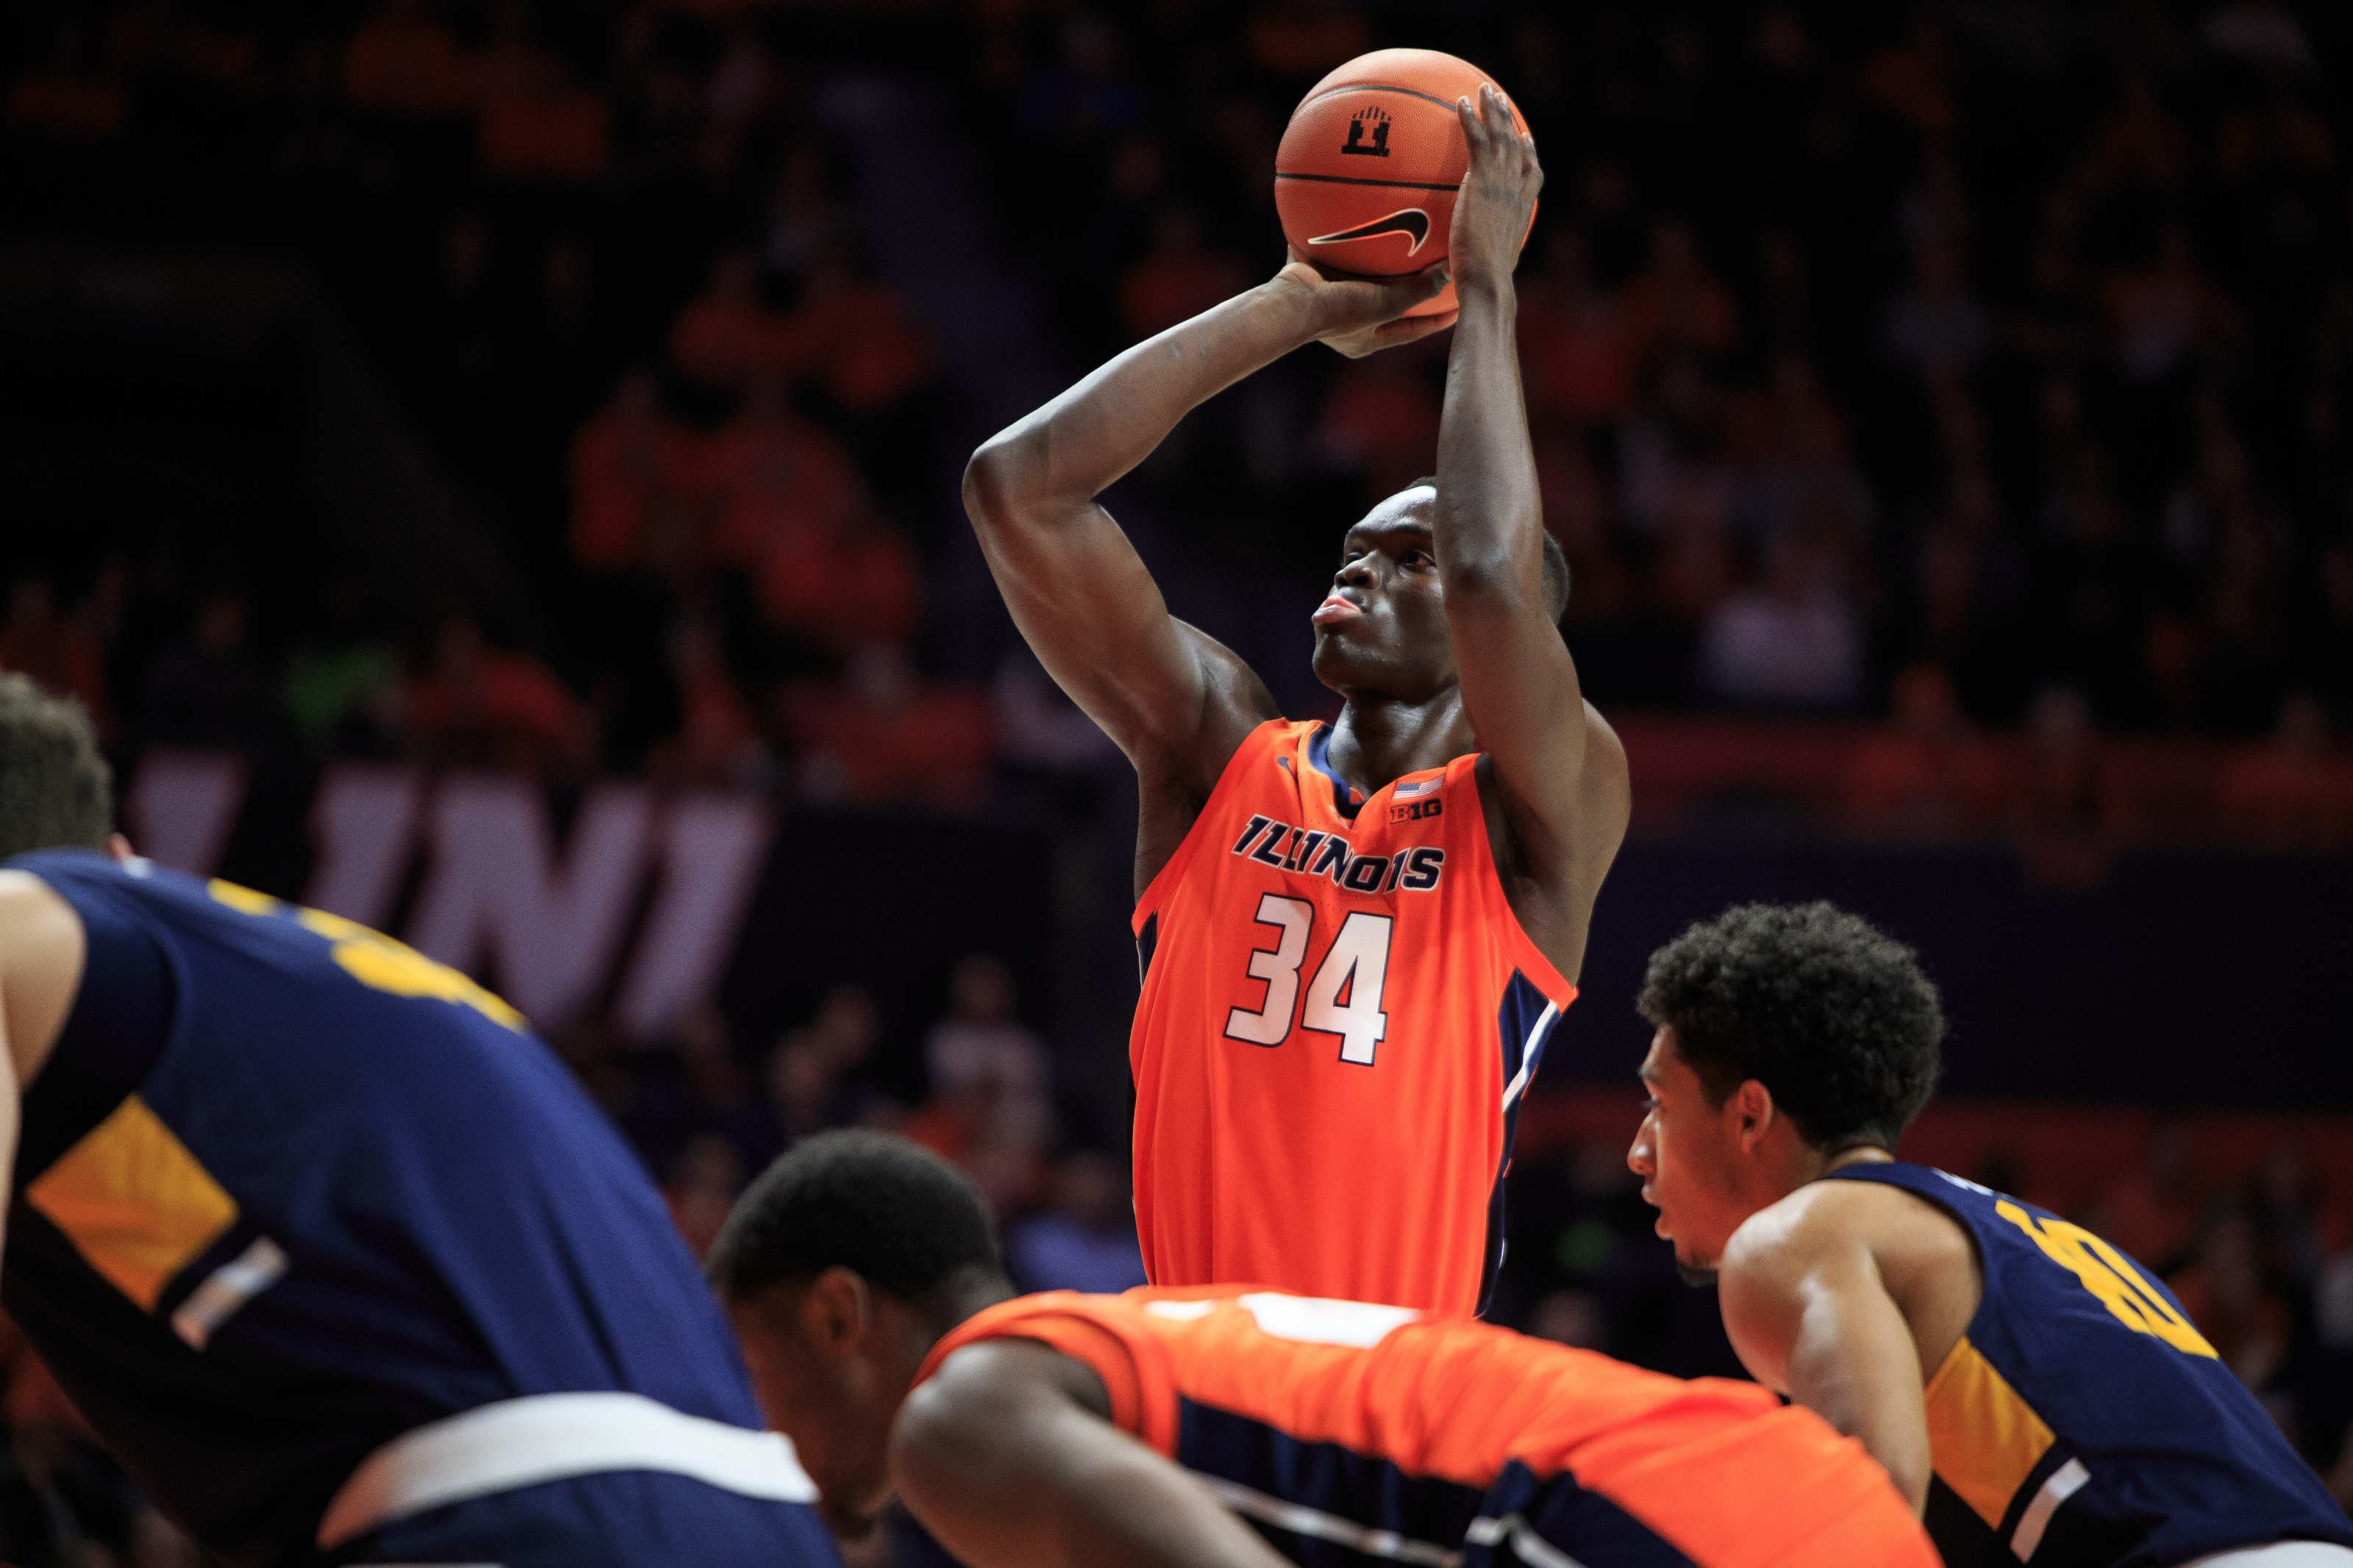 Illinois Basketball: Figuring out the most productive rotation for ...